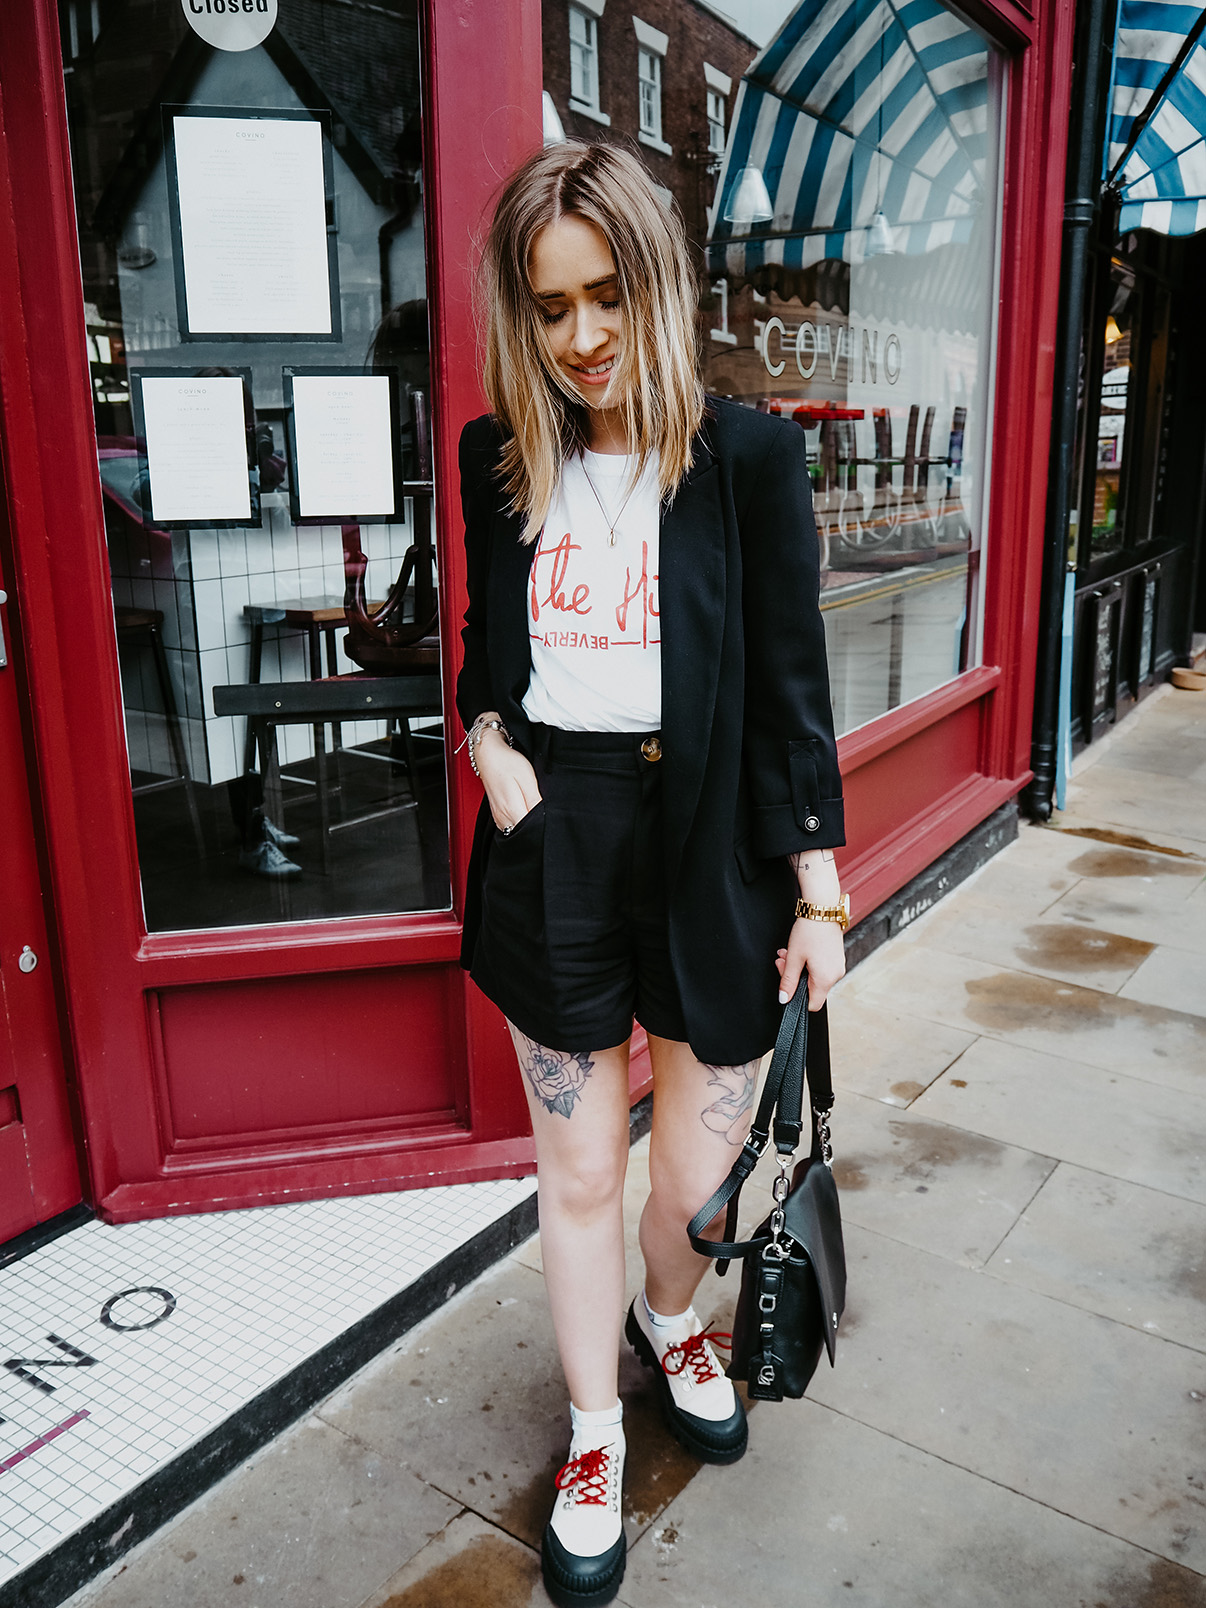 chester blogger lucy love